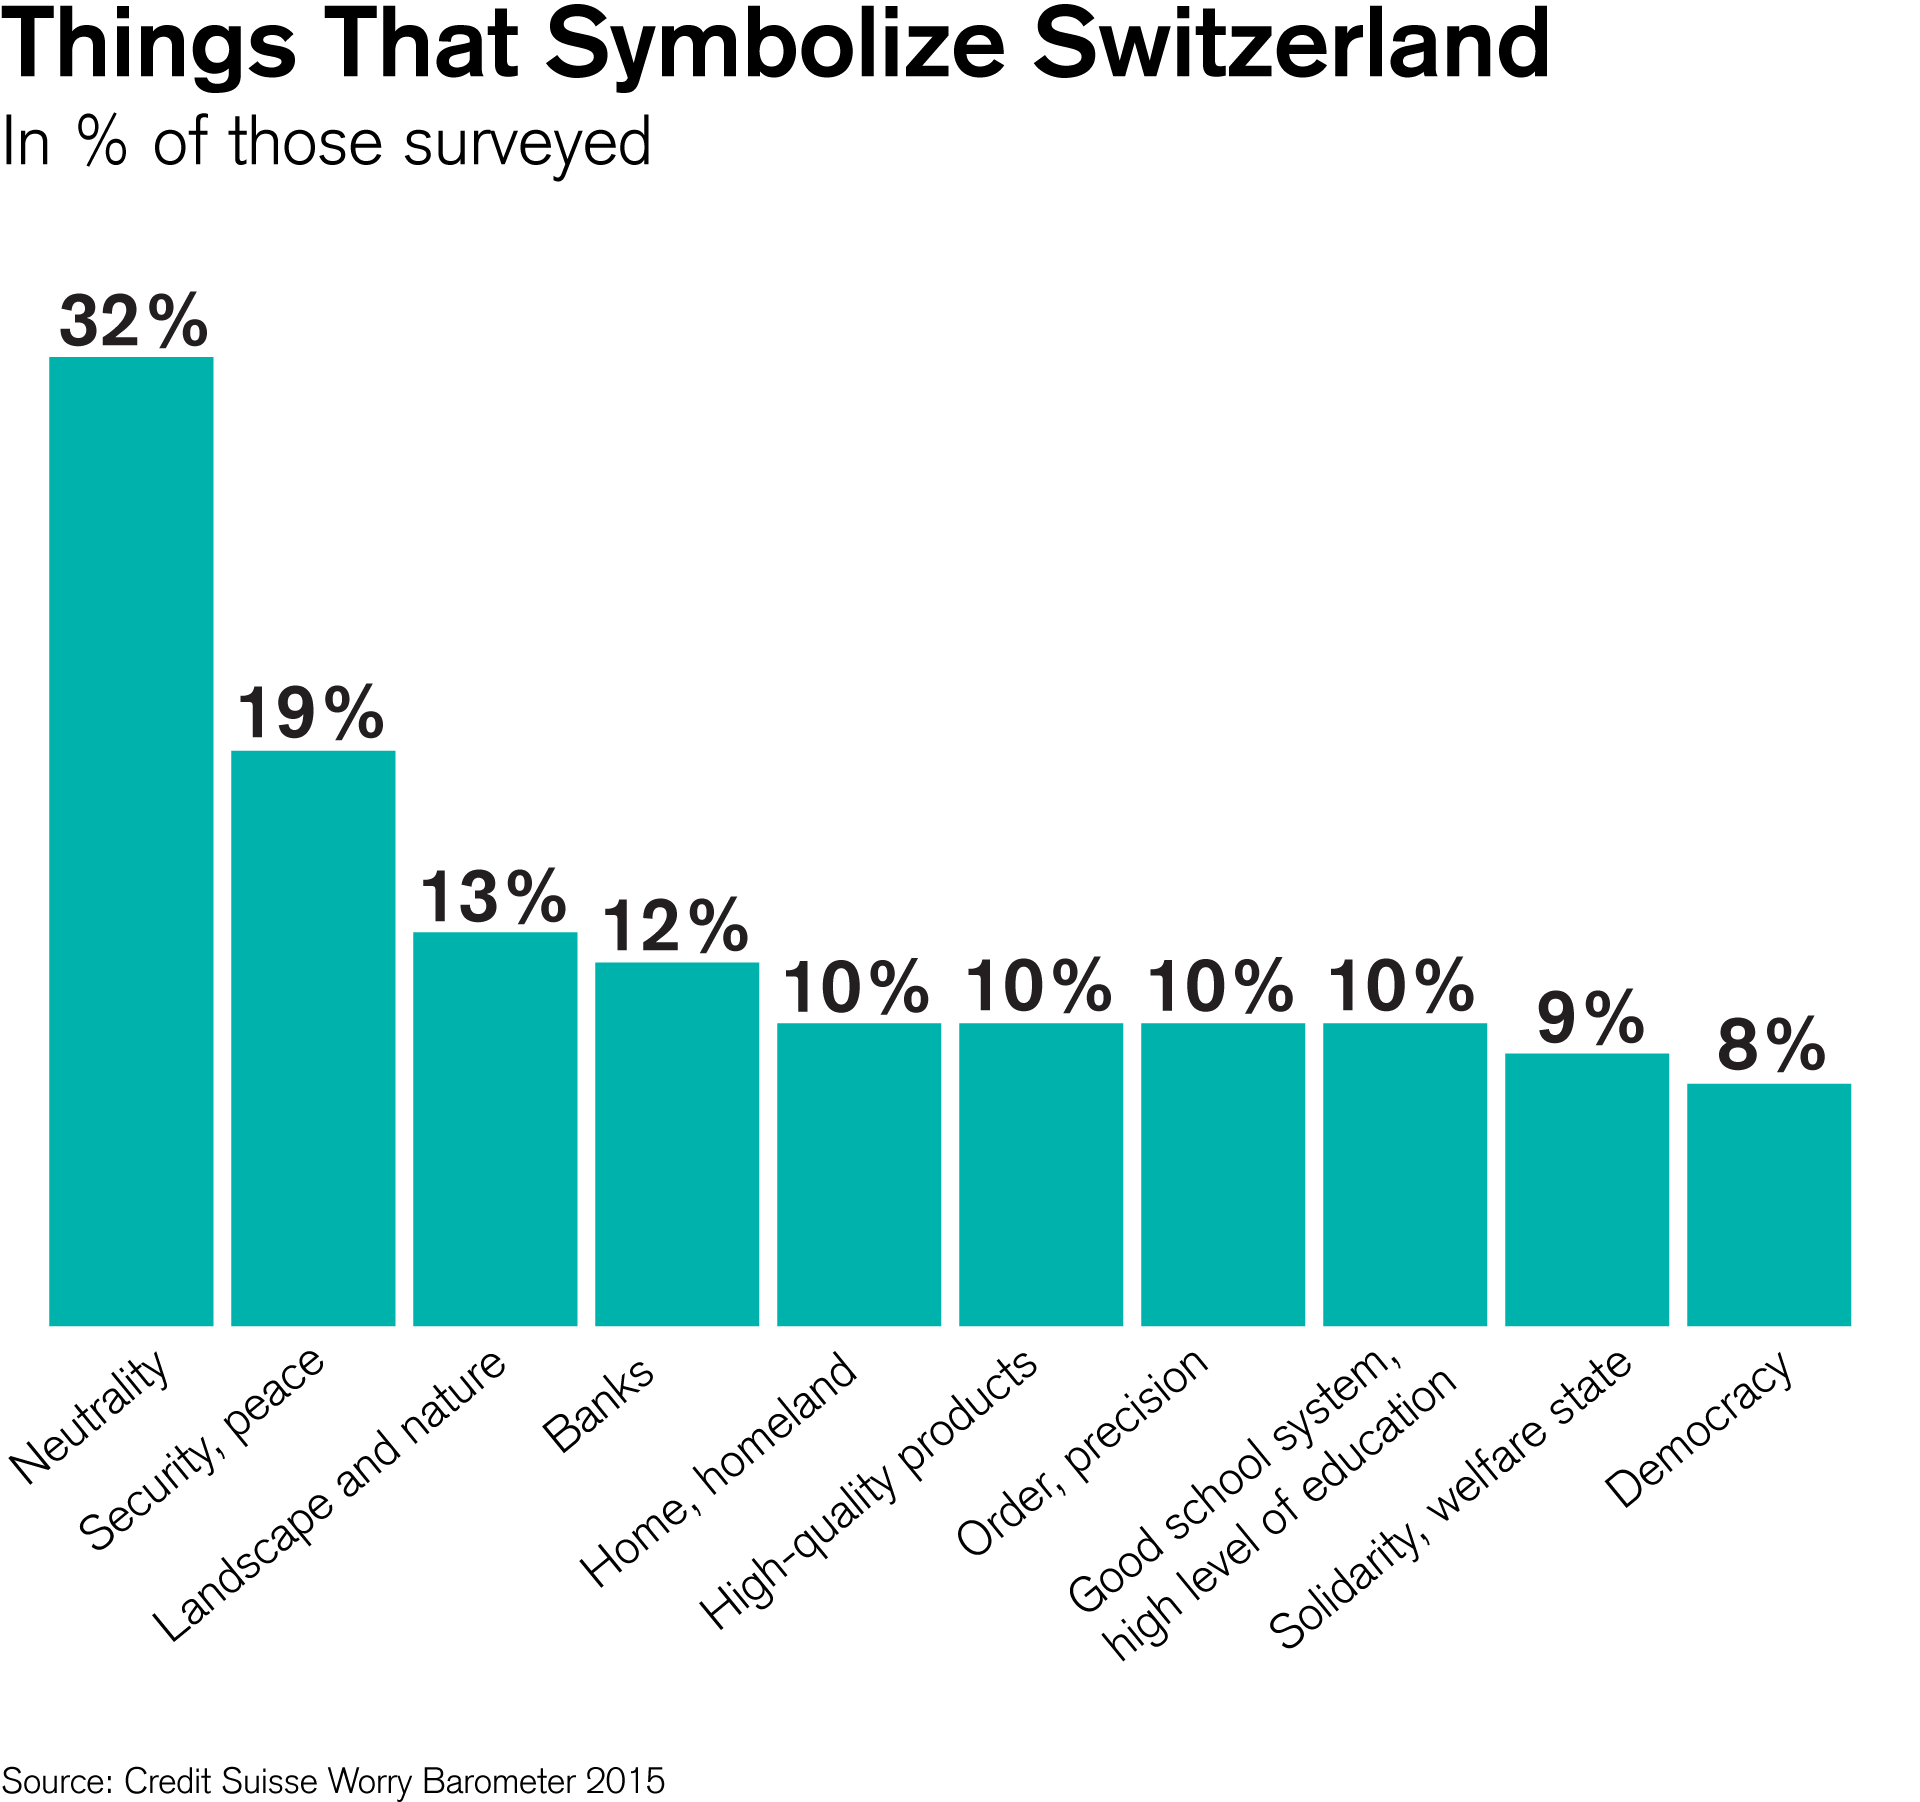 Things That Symbolize Switzerland